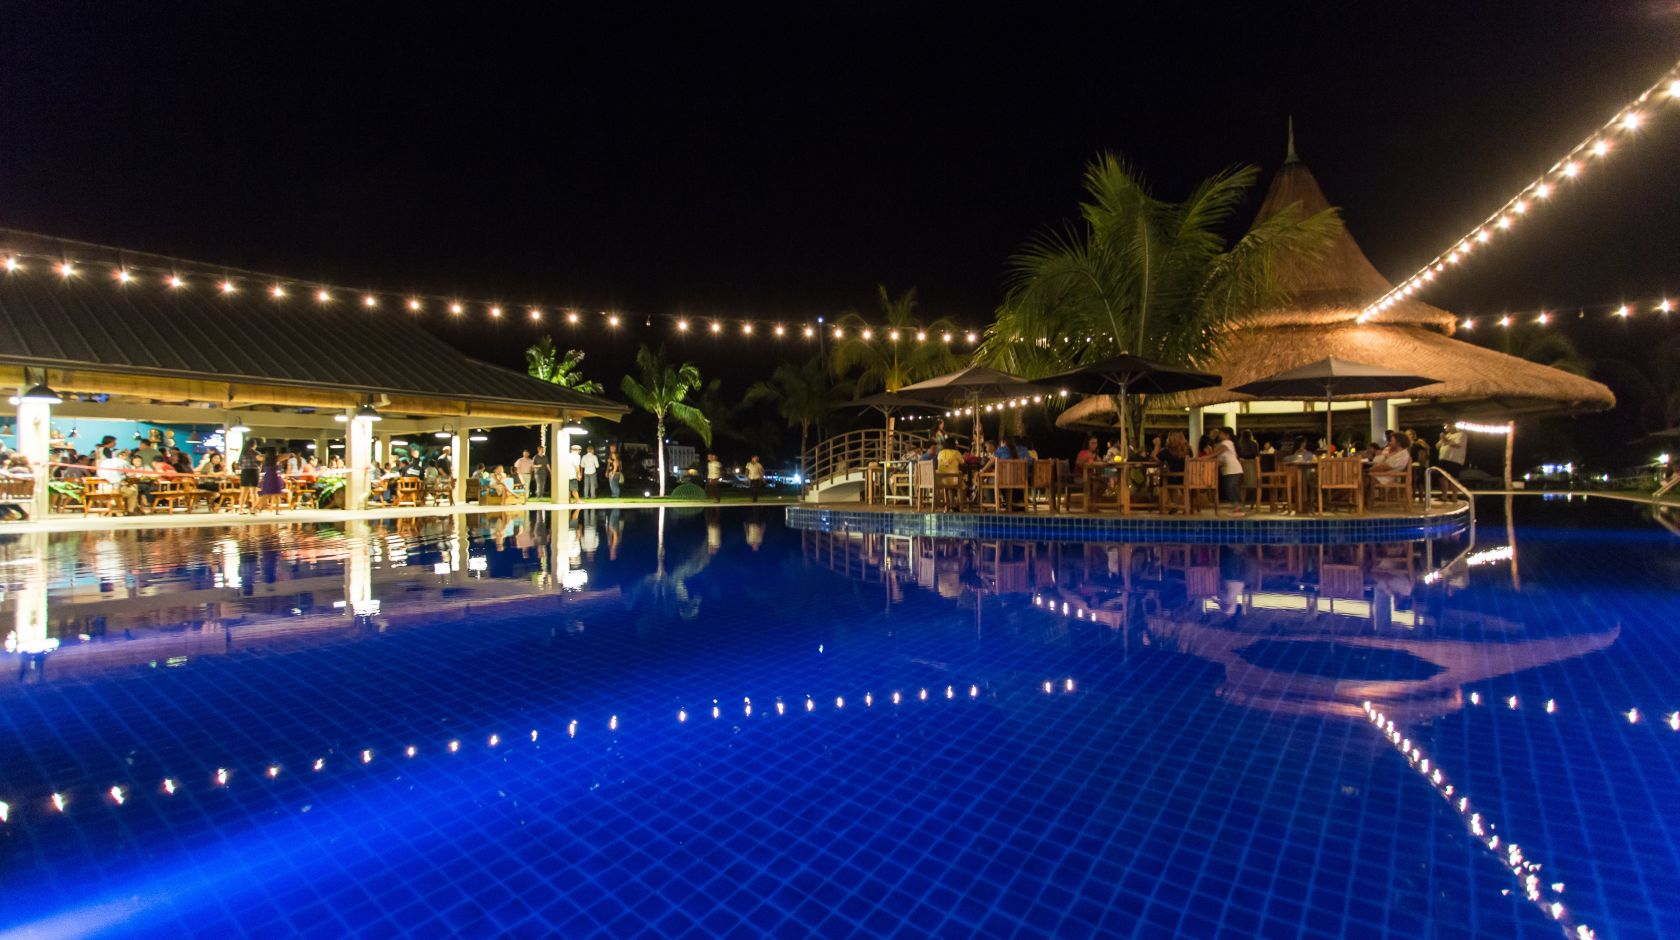 beautiful night pool at cove resort palau